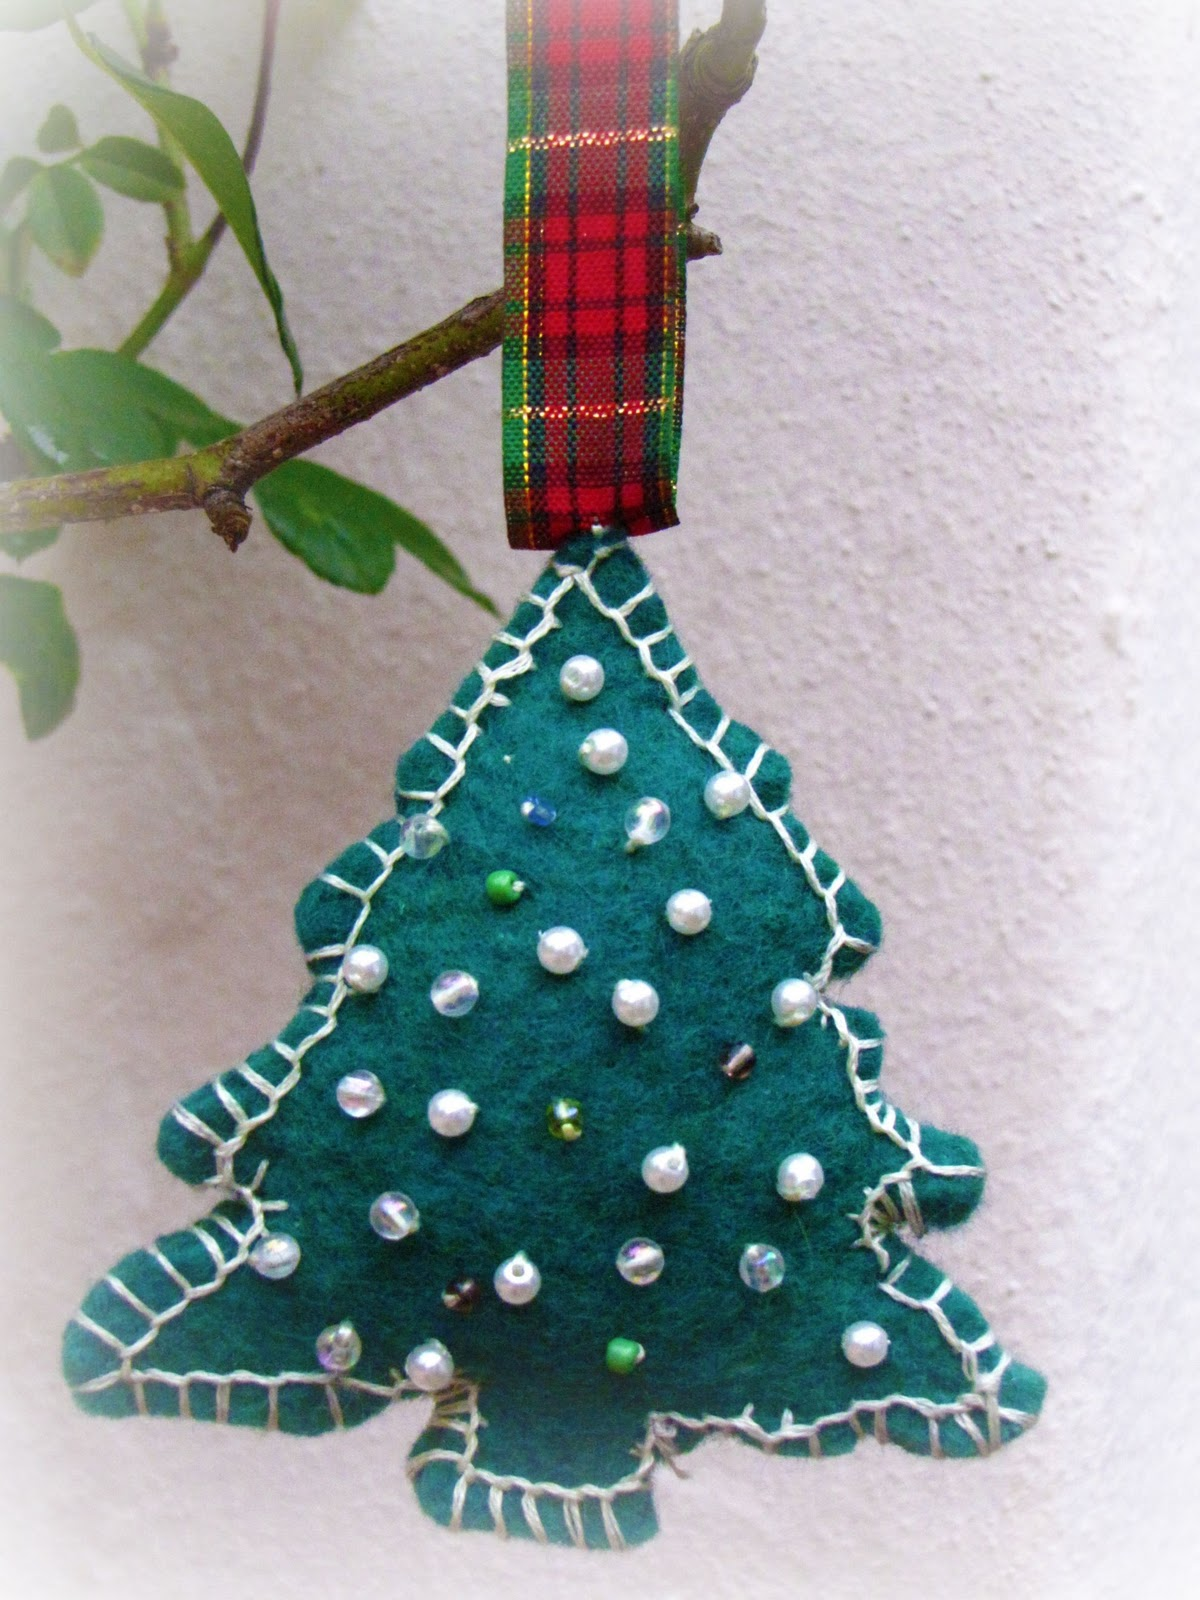 Wip wednesday felt christmas tree ornament tutorial for Home made christmas tree decorations